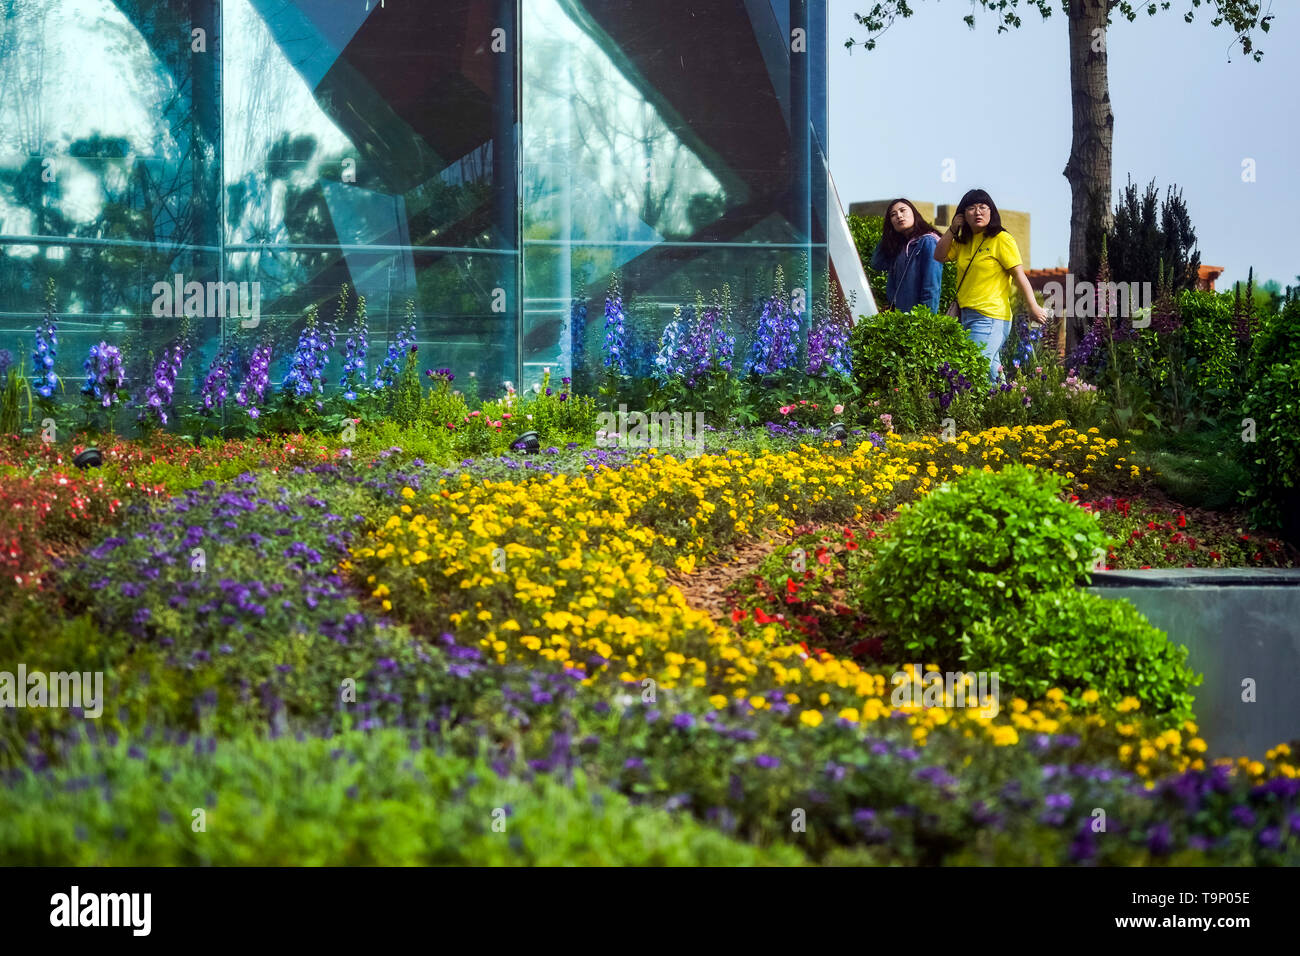 (190520) -- BEIJING, May 20, 2019 (Xinhua) -- Visitors tour the Liaoning Garden of the Beijing International Horticultural Exhibition in Beijing, capital of China, April 29, 2019. Liaoning Province is located in the southern part of Northeast China, with the Bohai Sea and the Yellow Sea lying to its south. Over the years, the provincial government has prioritized ecological development and set environmental improvement at the core of its agenda. The province's ecological conditions have been improving thanks to systematic conservation of the natural environment, overall management of the rural - Stock Image